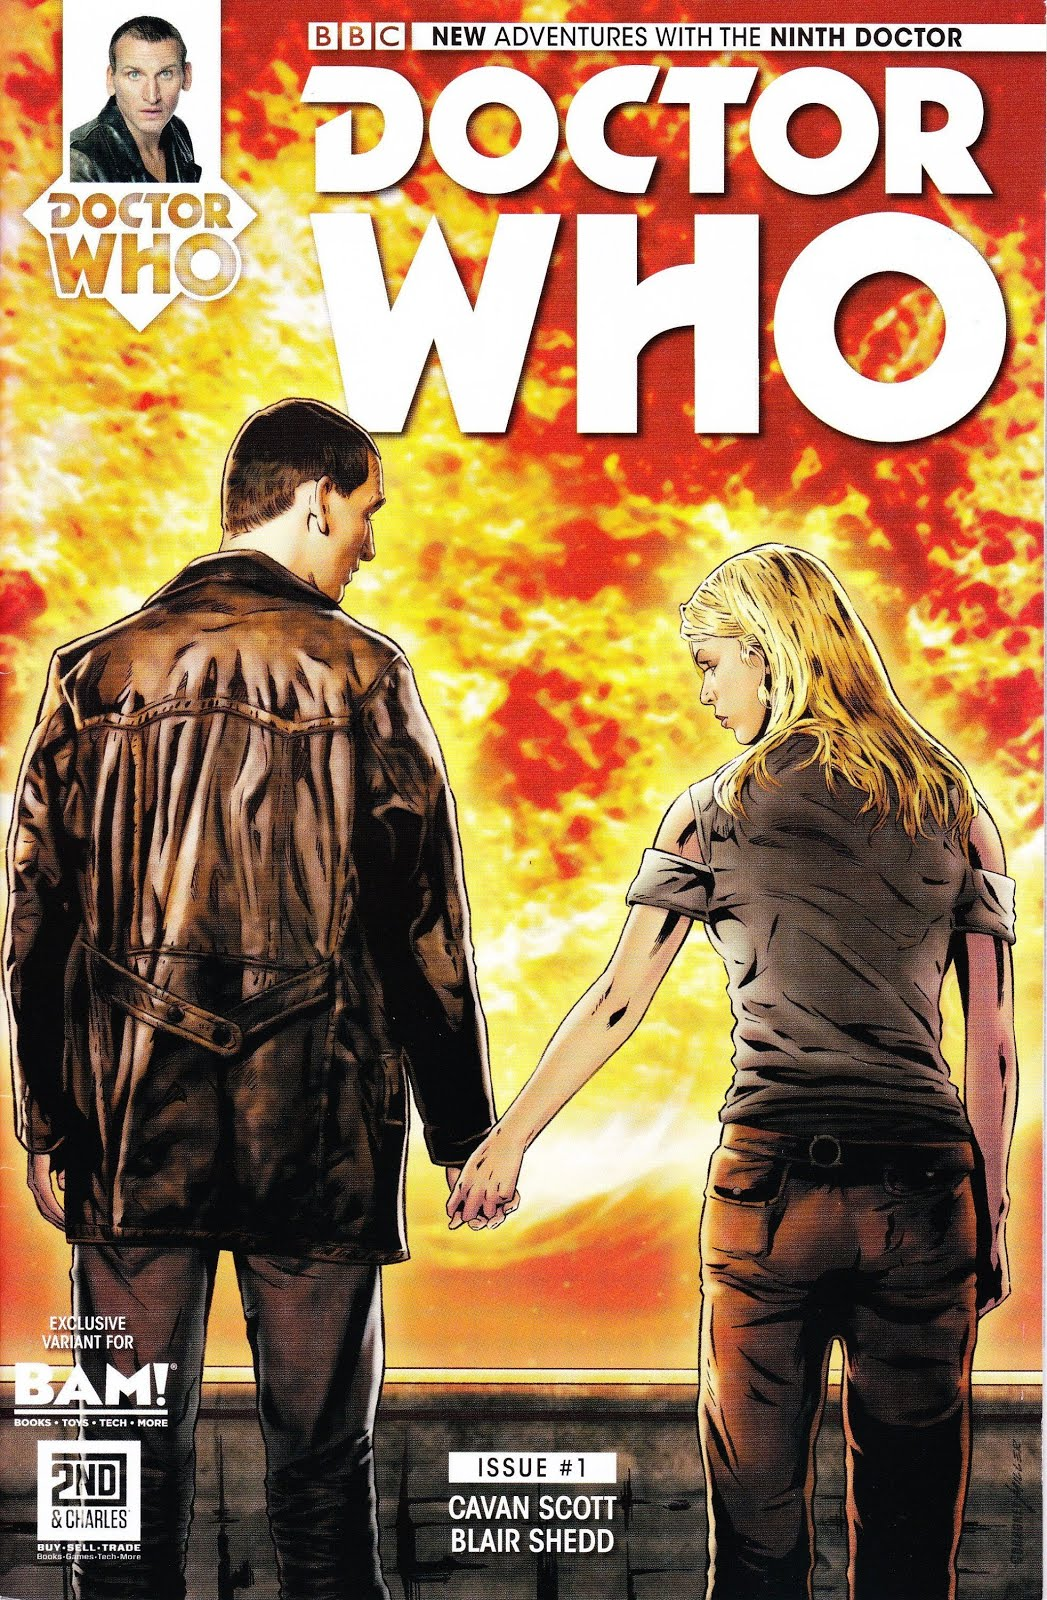 Doctor Who The Ninth Doctor #1 BAM! Variant Cover May 2016 Titan Comics